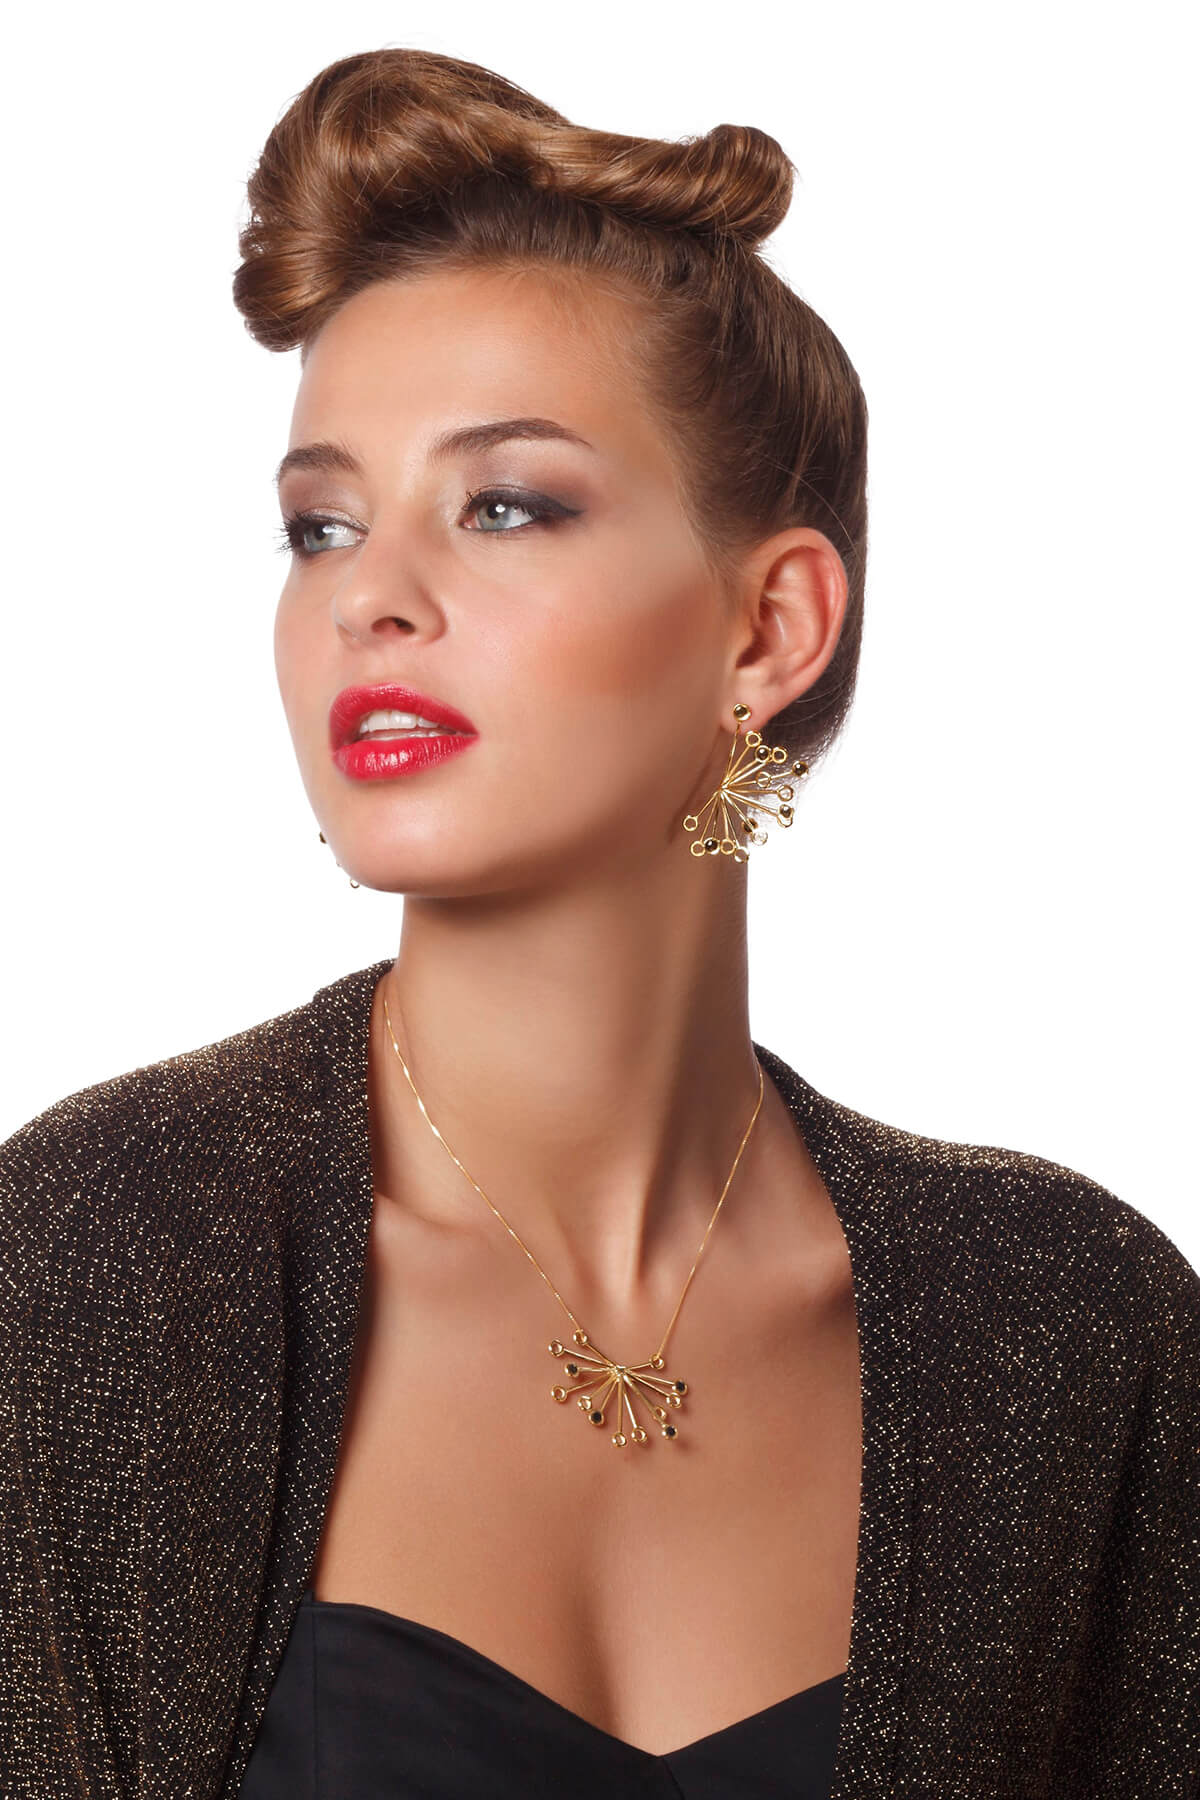 Handmade Vermeil Senecio Flower Necklace and Earrings – Black Pattern